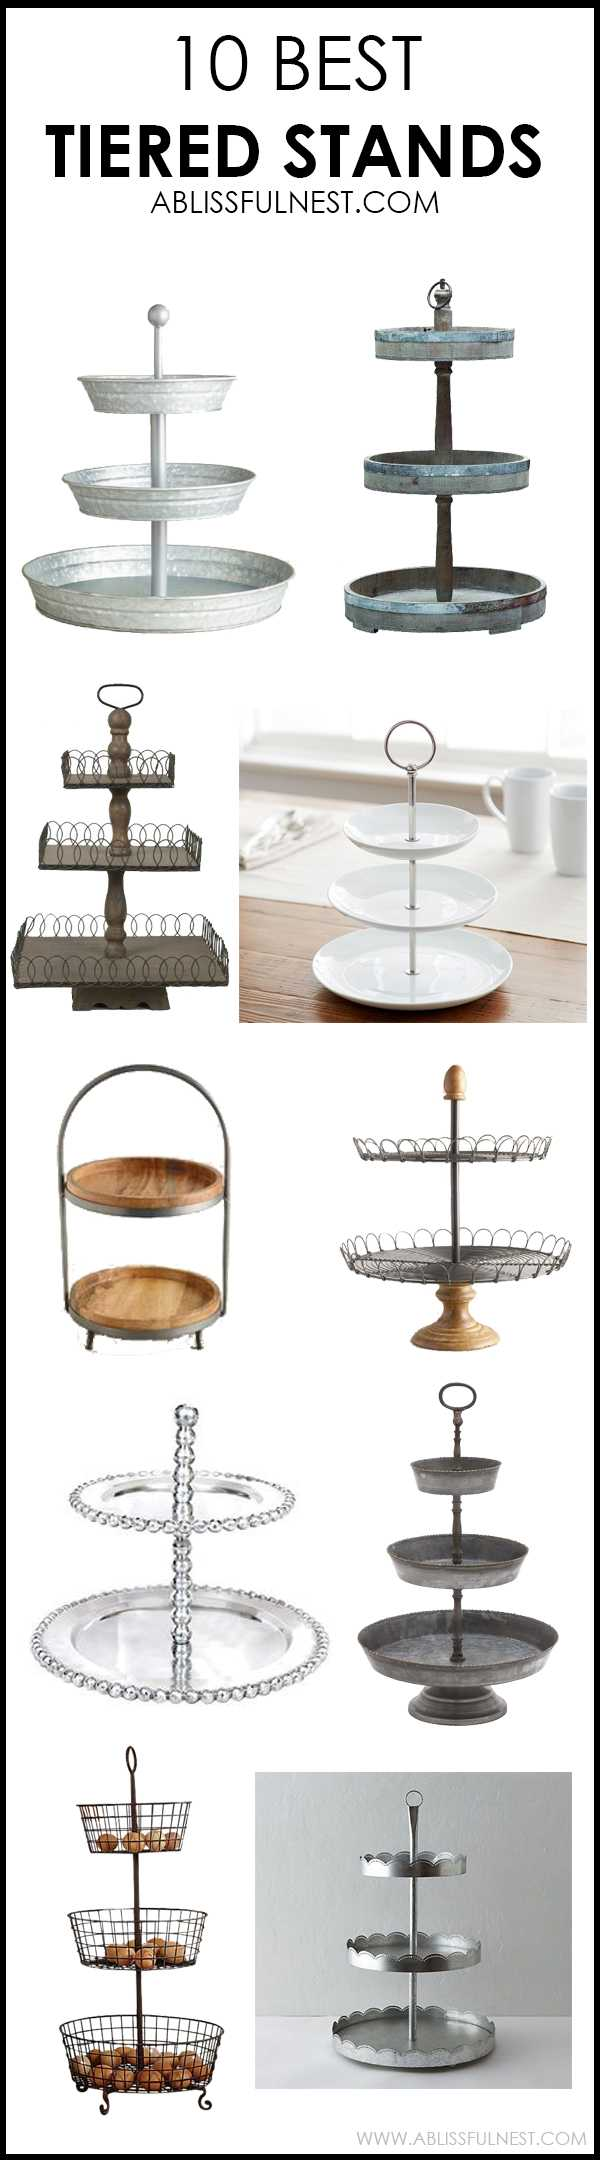 We LOVE tiered stands in the bathroom, kitchen and just about anywhere to store and decorate small items. We've rounded up THE BEST tiered stands out there! By A Blissful Nest https://ablissfulnest.com/